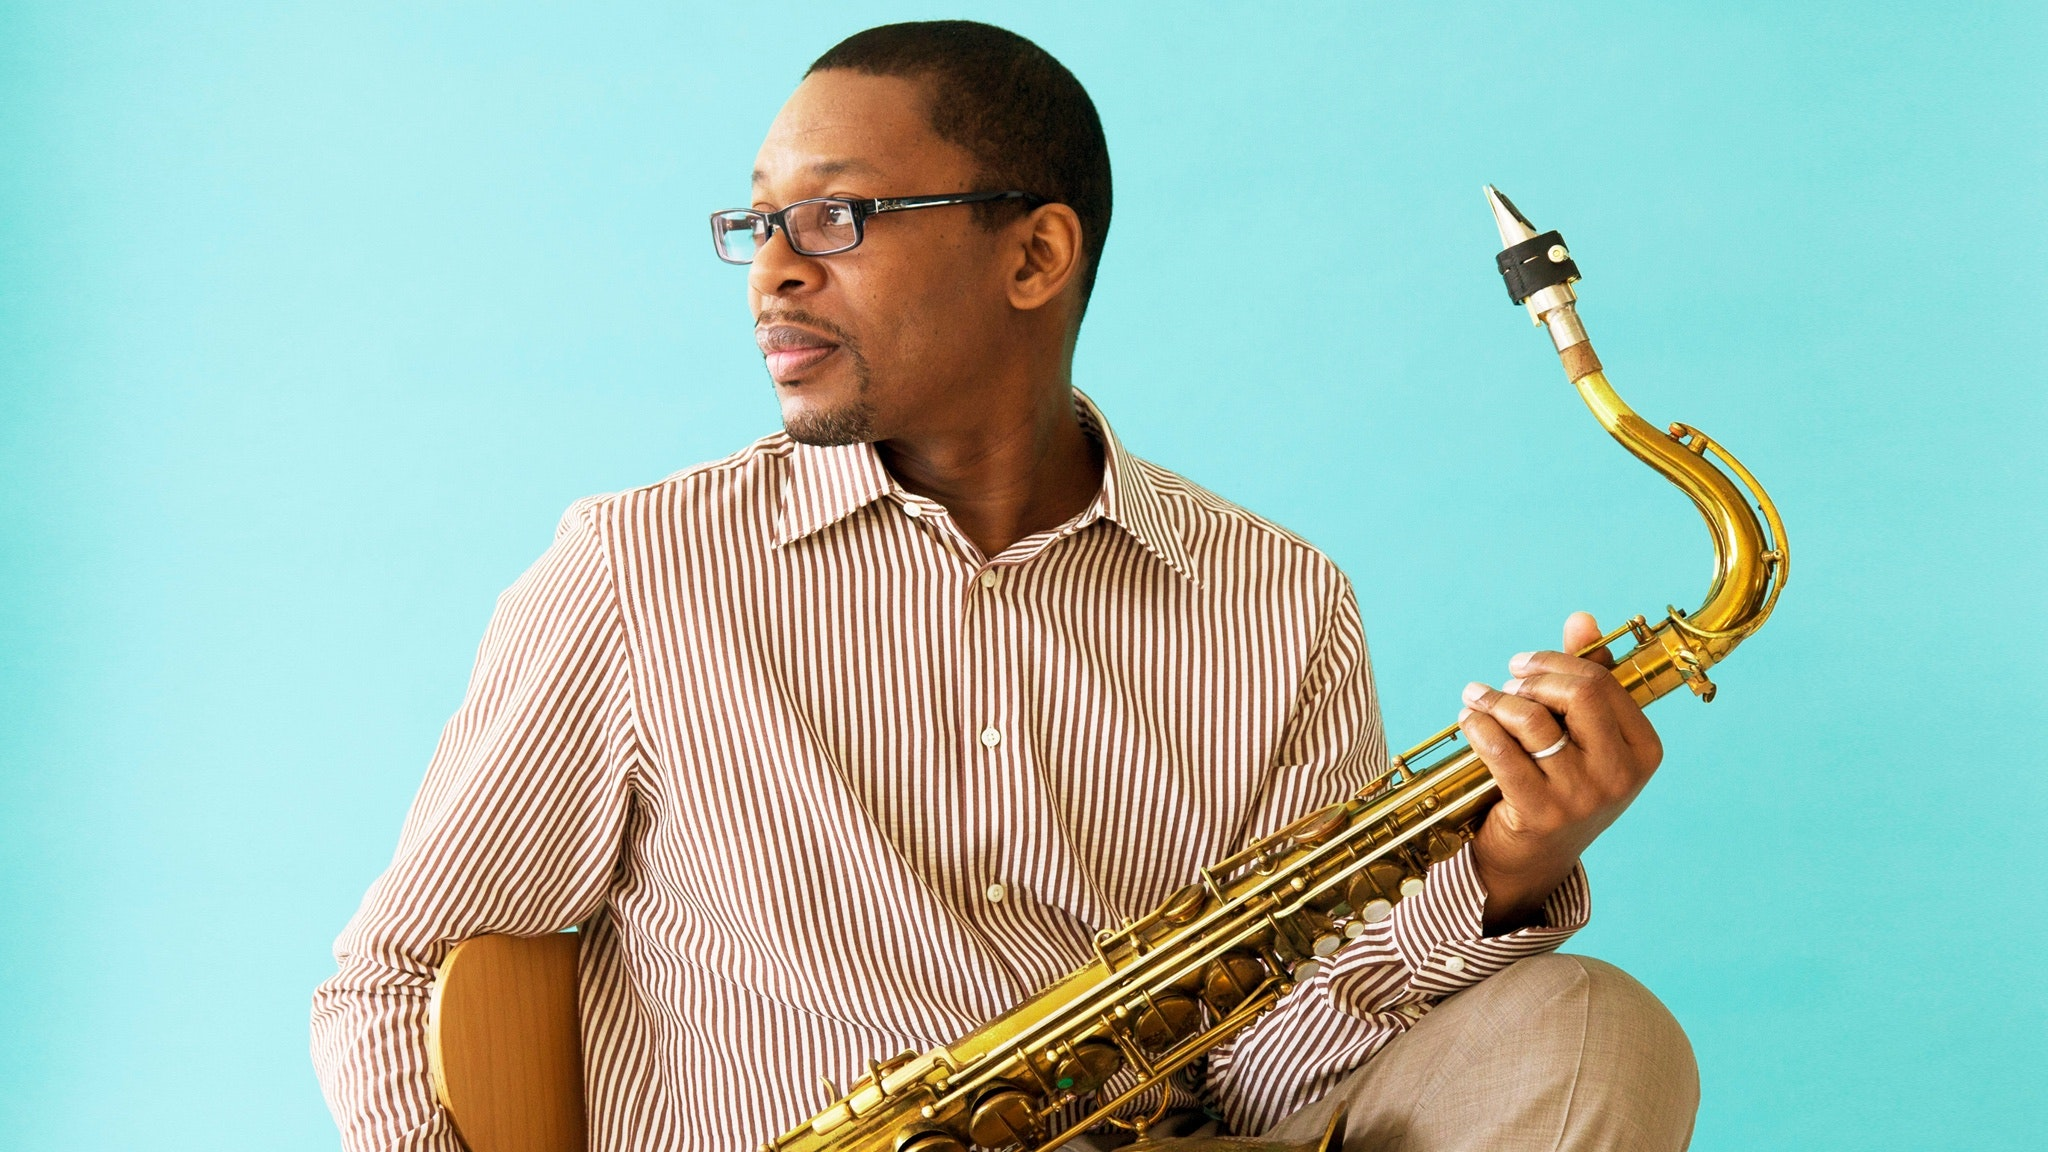 Ravi Coltrane returns to Bird's Basement in September